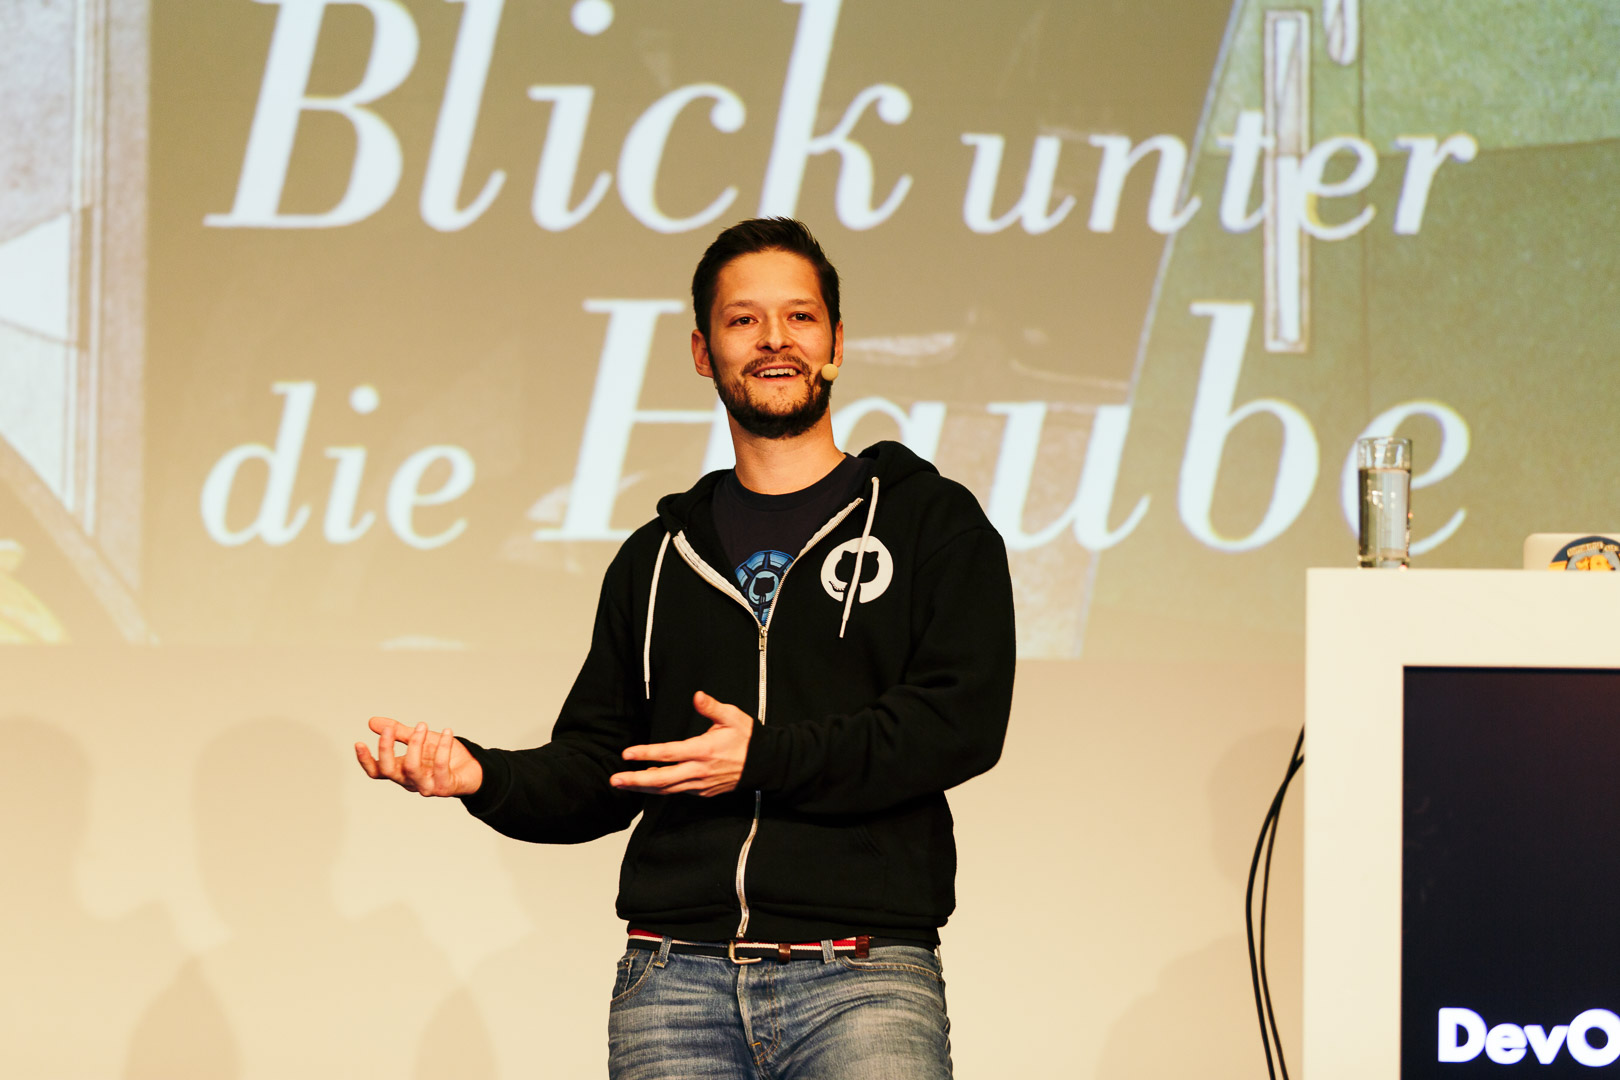 Speaker bei einer Session der DevOps Conference